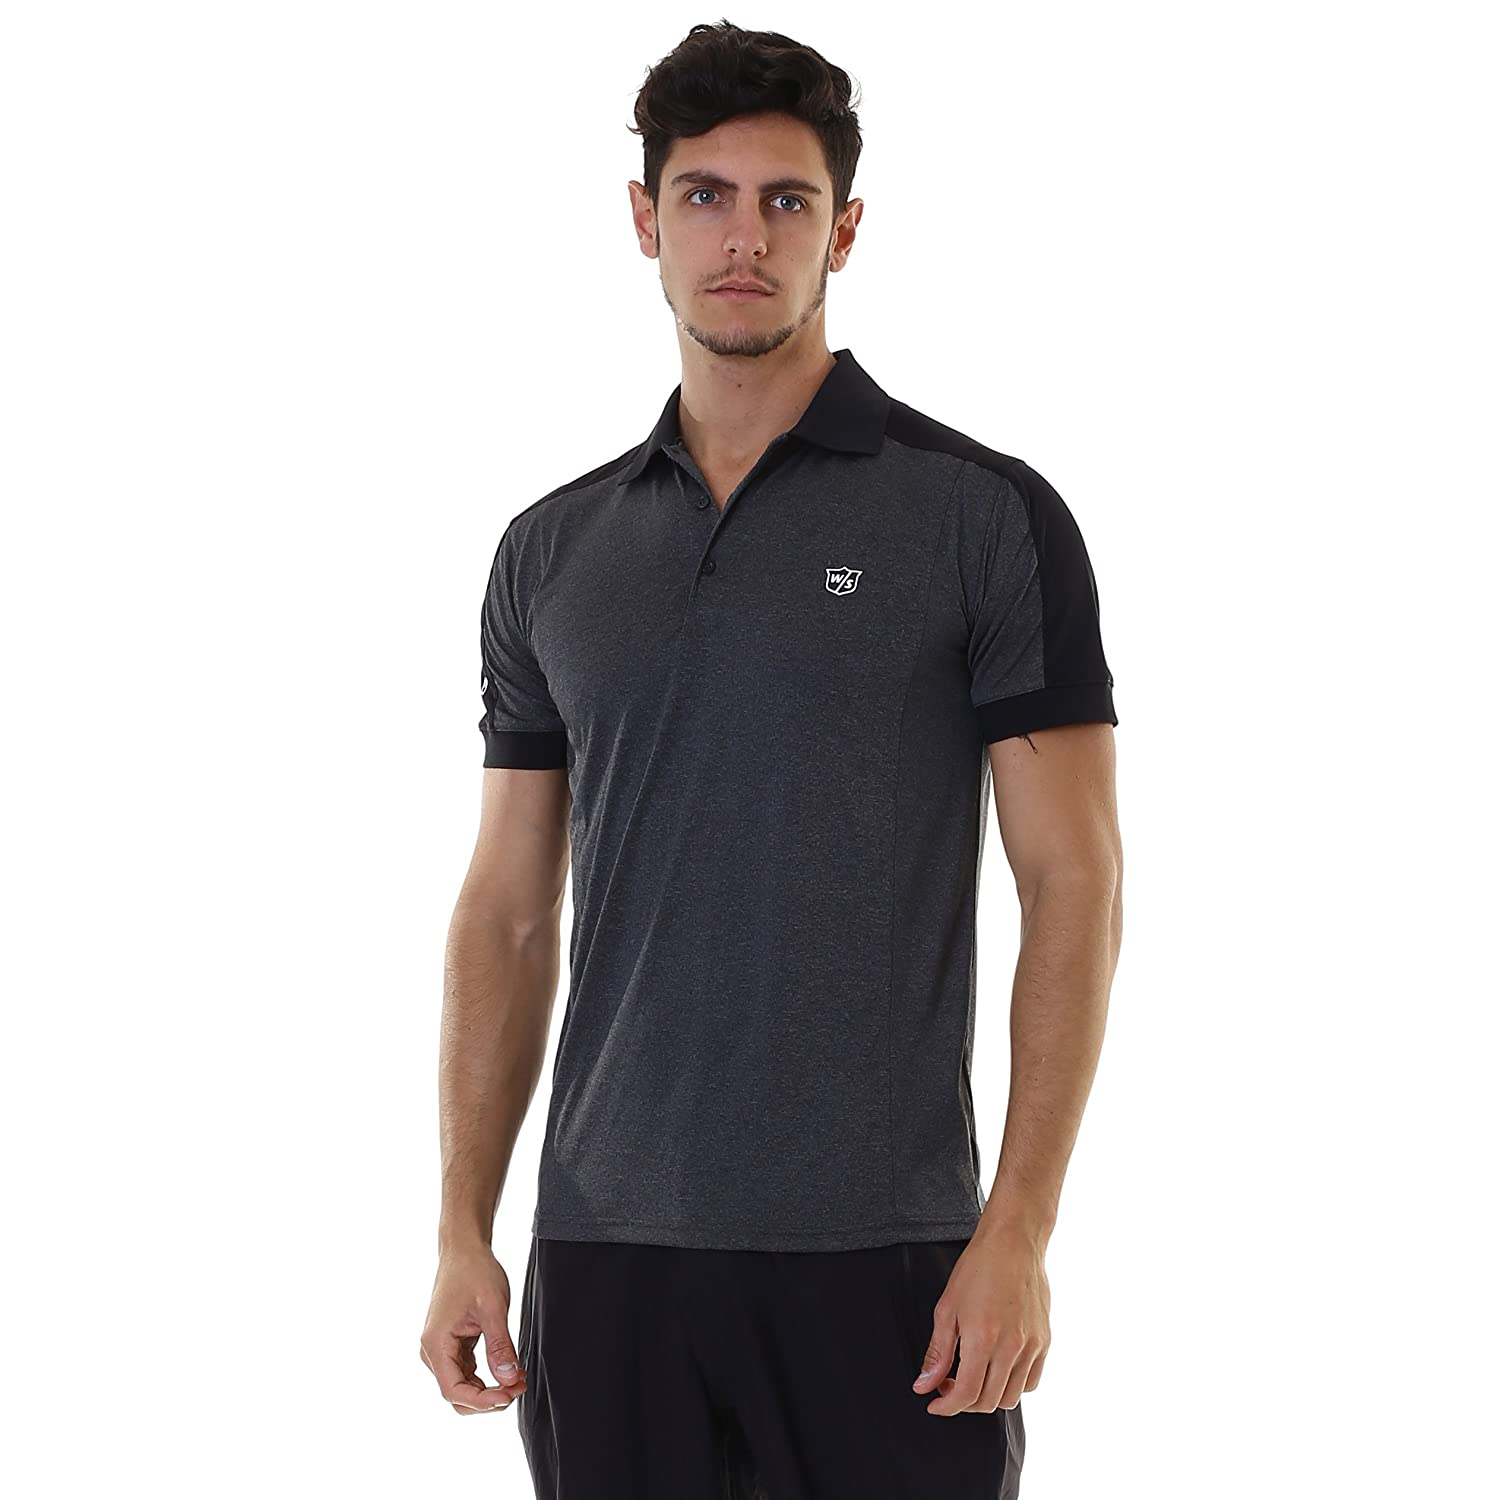 Wilson Staff FG Tour F5 Performance Polo-Shirt Mottled Grau Grösse XXL